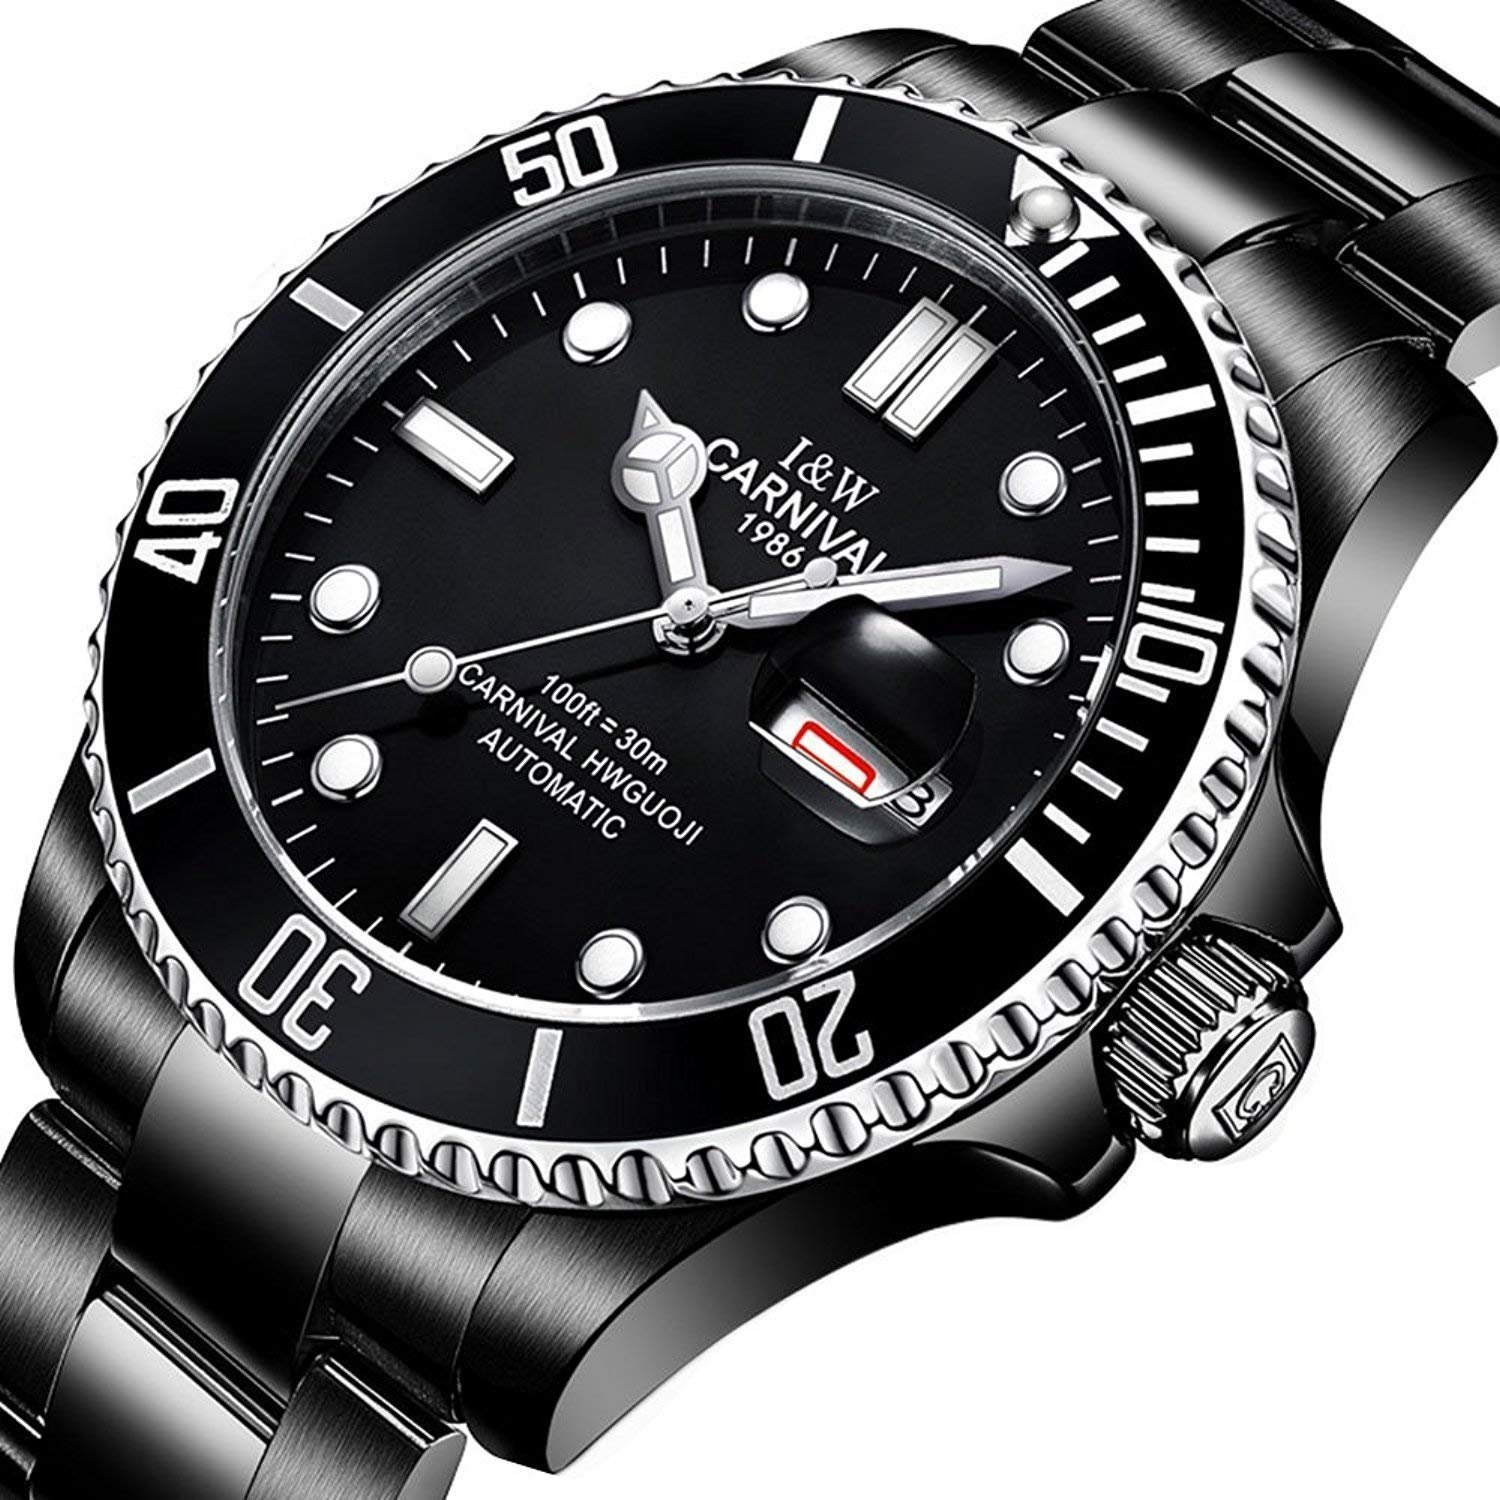 fcc97ff237c Amazon.com  Men Automatic Mechanical Watch Business Luxury Sport GMT  Watches Luminous Sapphire Glass Stainless Steel Diving Watch (Black)   Watches